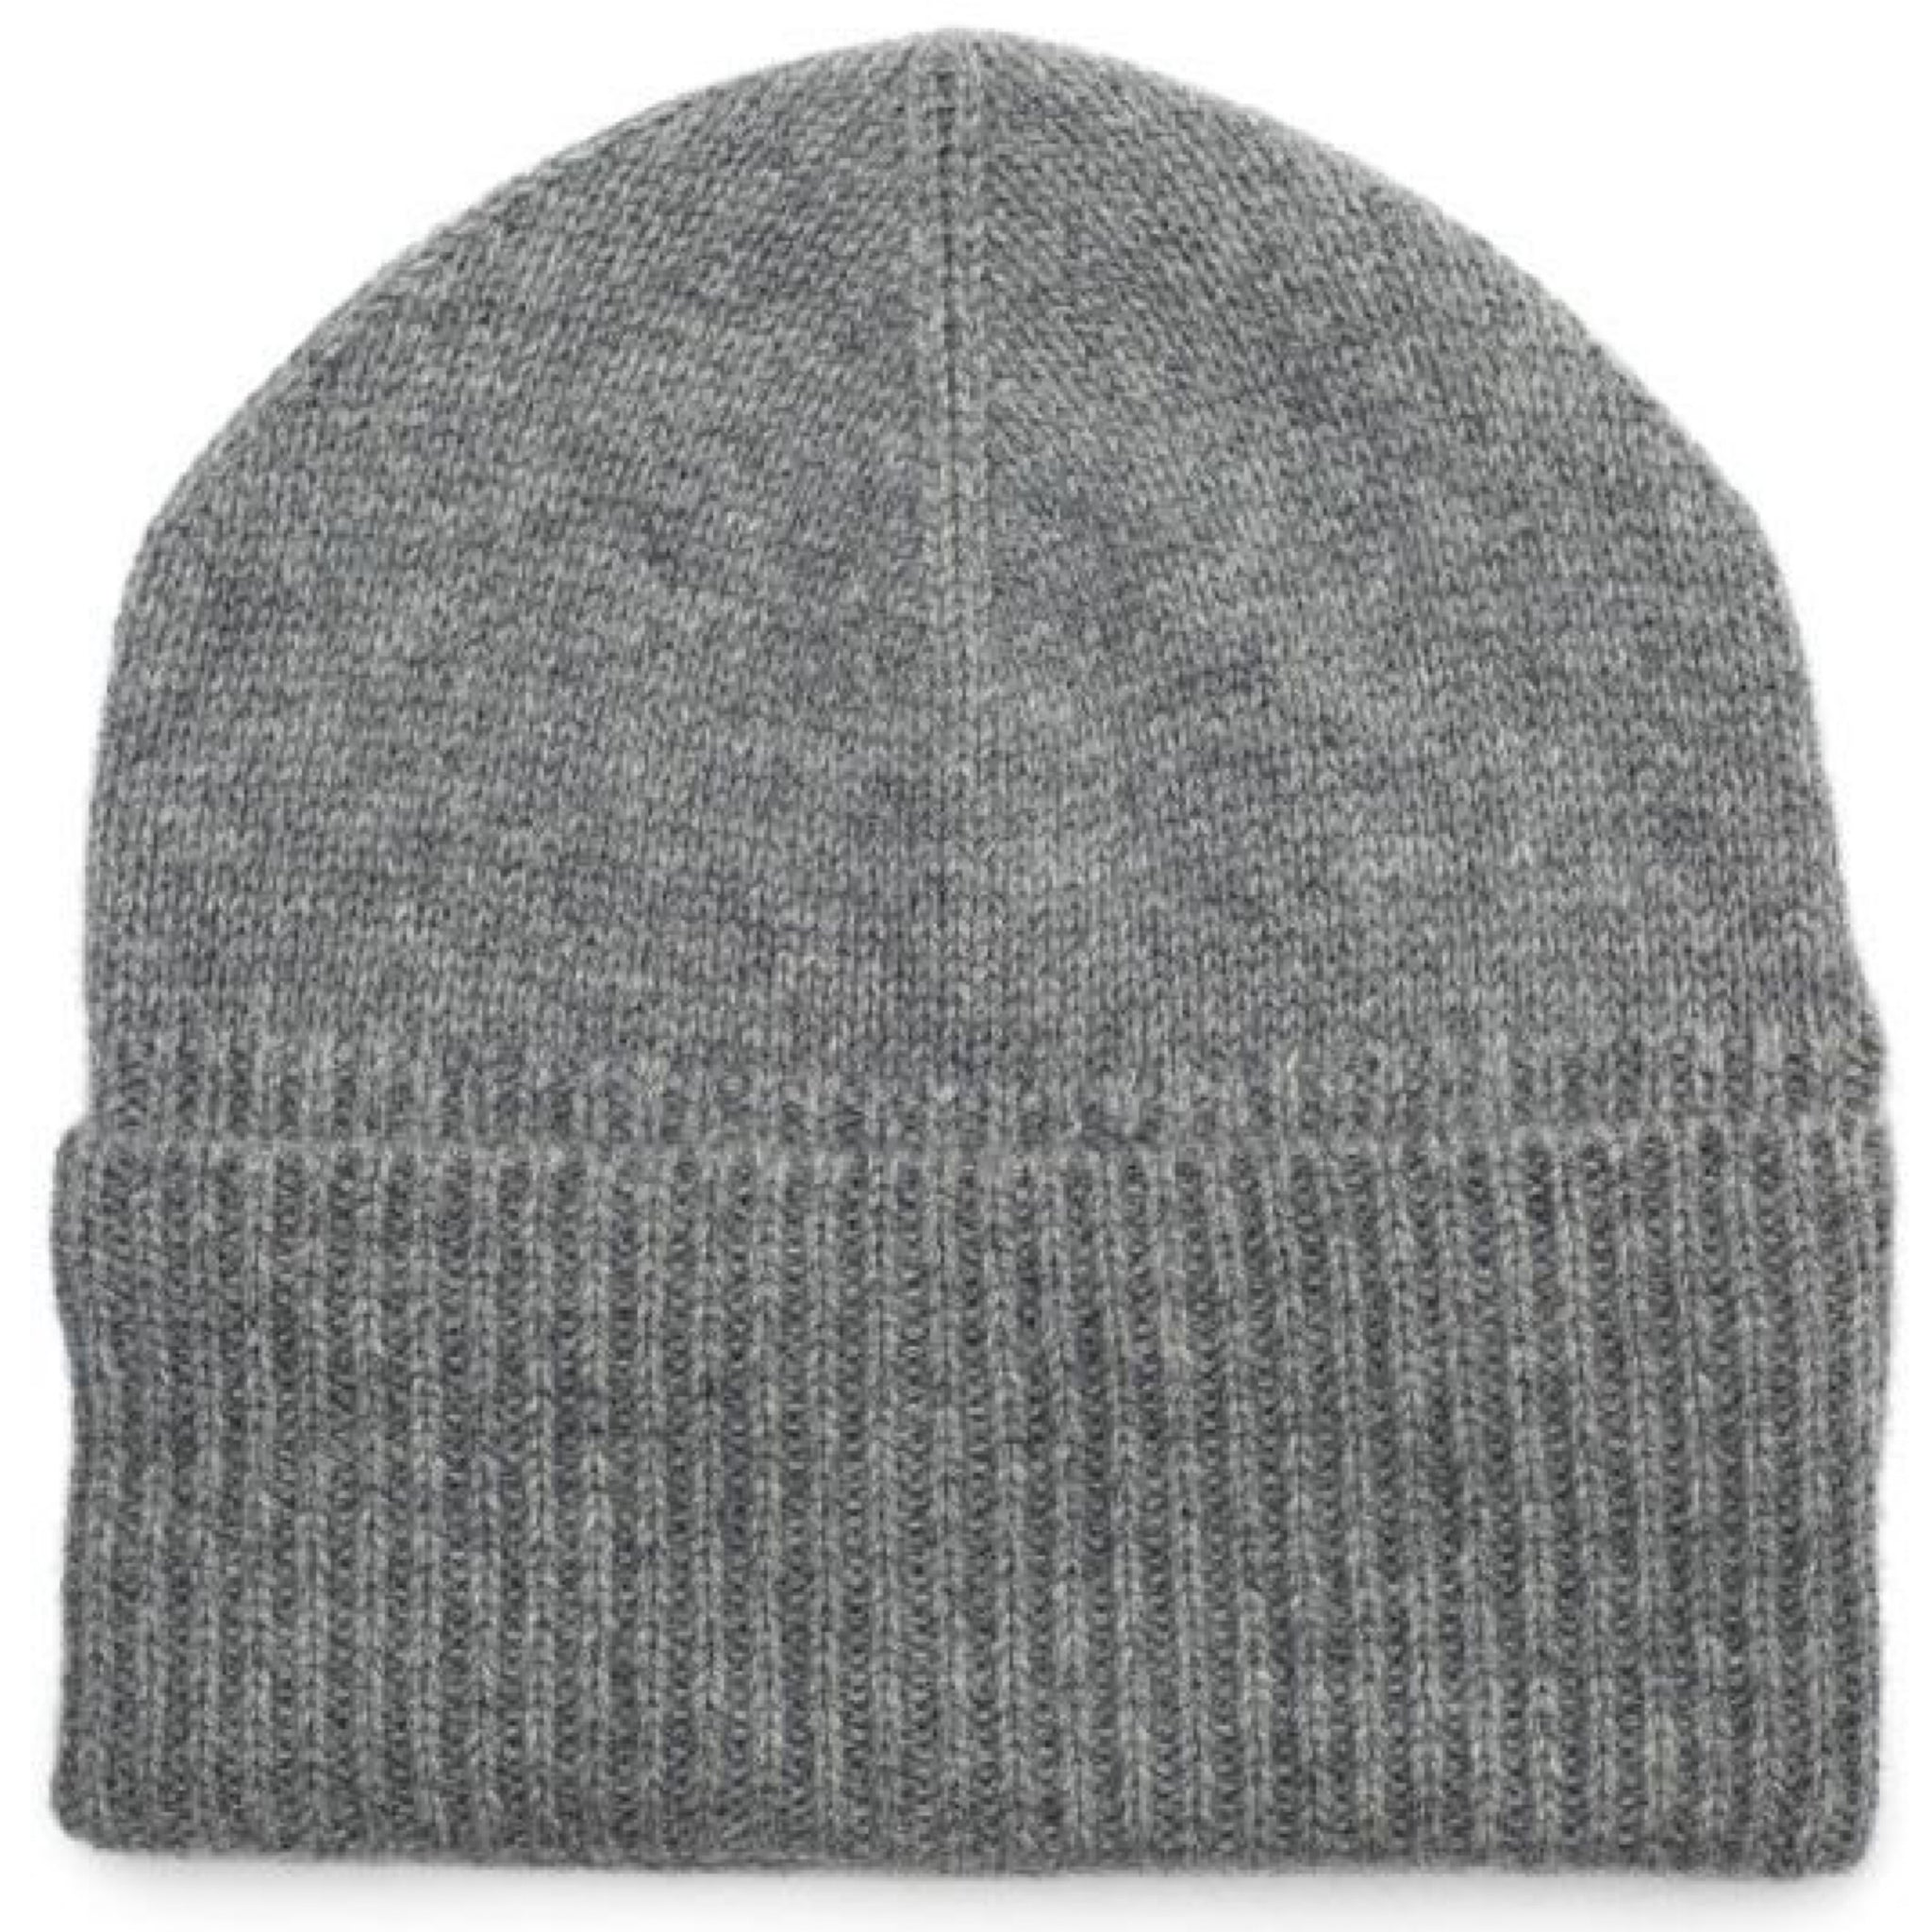 Ribbed Grey Beanie